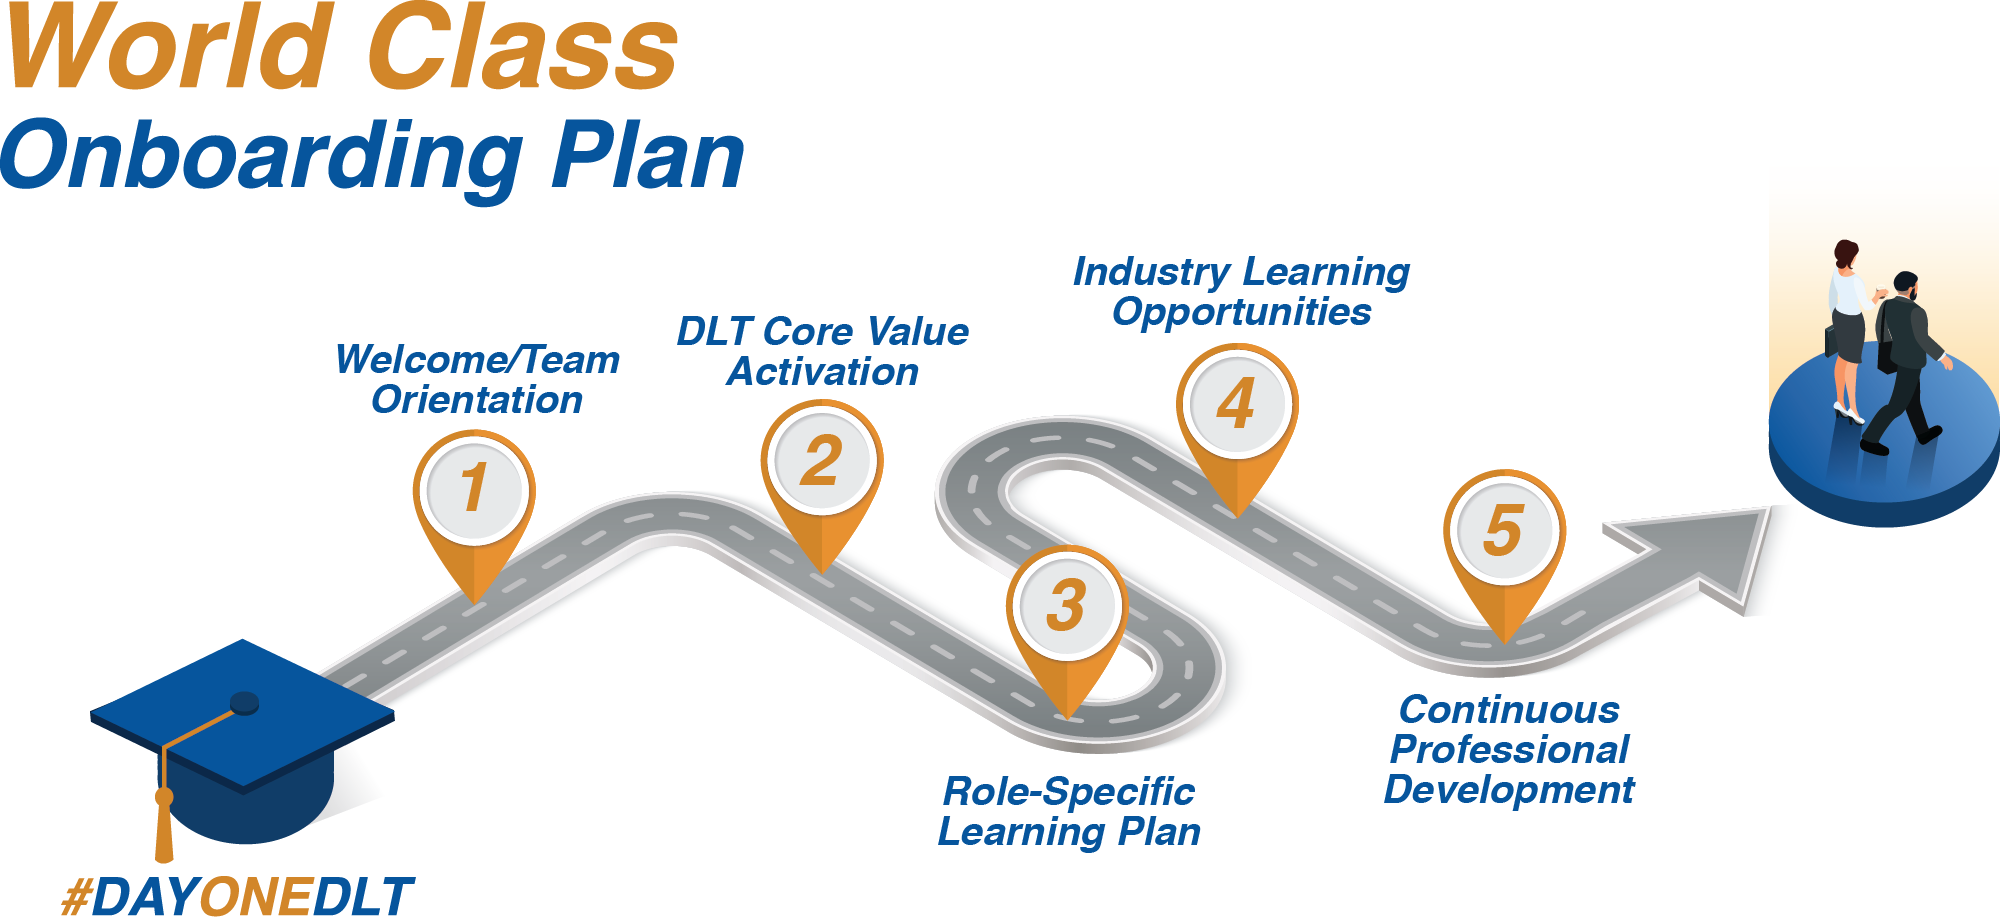 Chart of the 5 steps in the DLT Onboarding plan